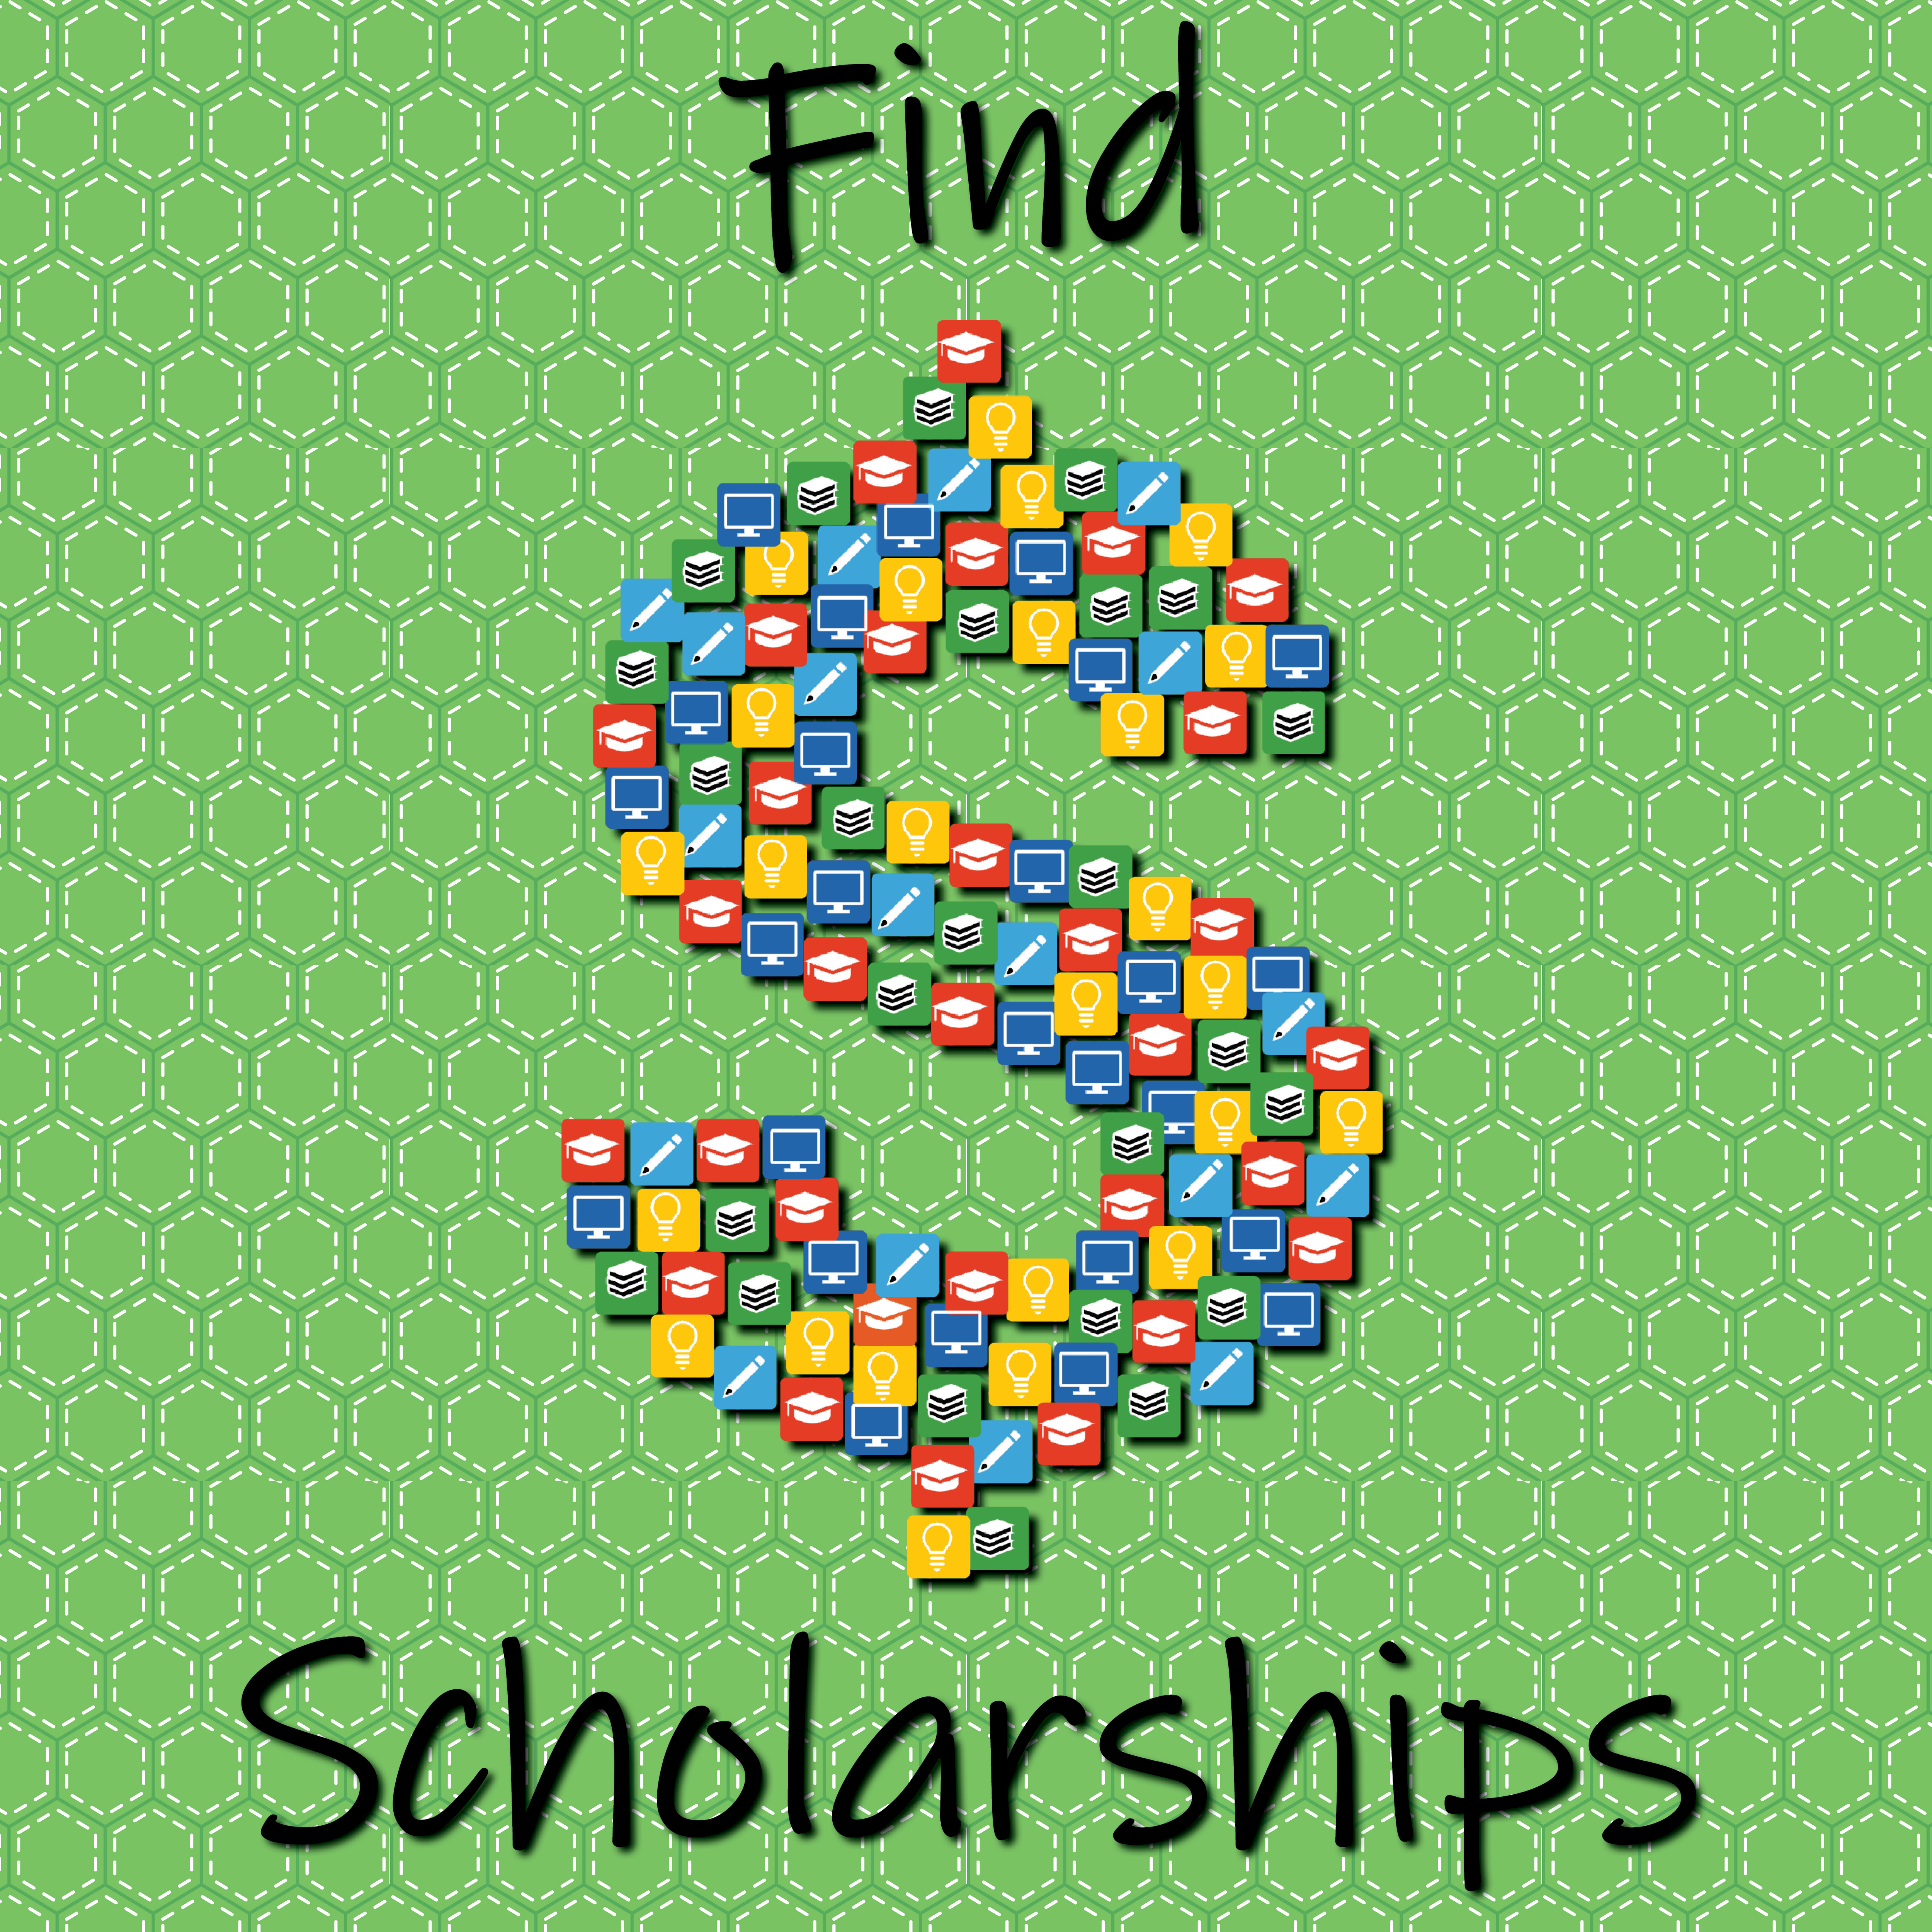 Find Scholarships button